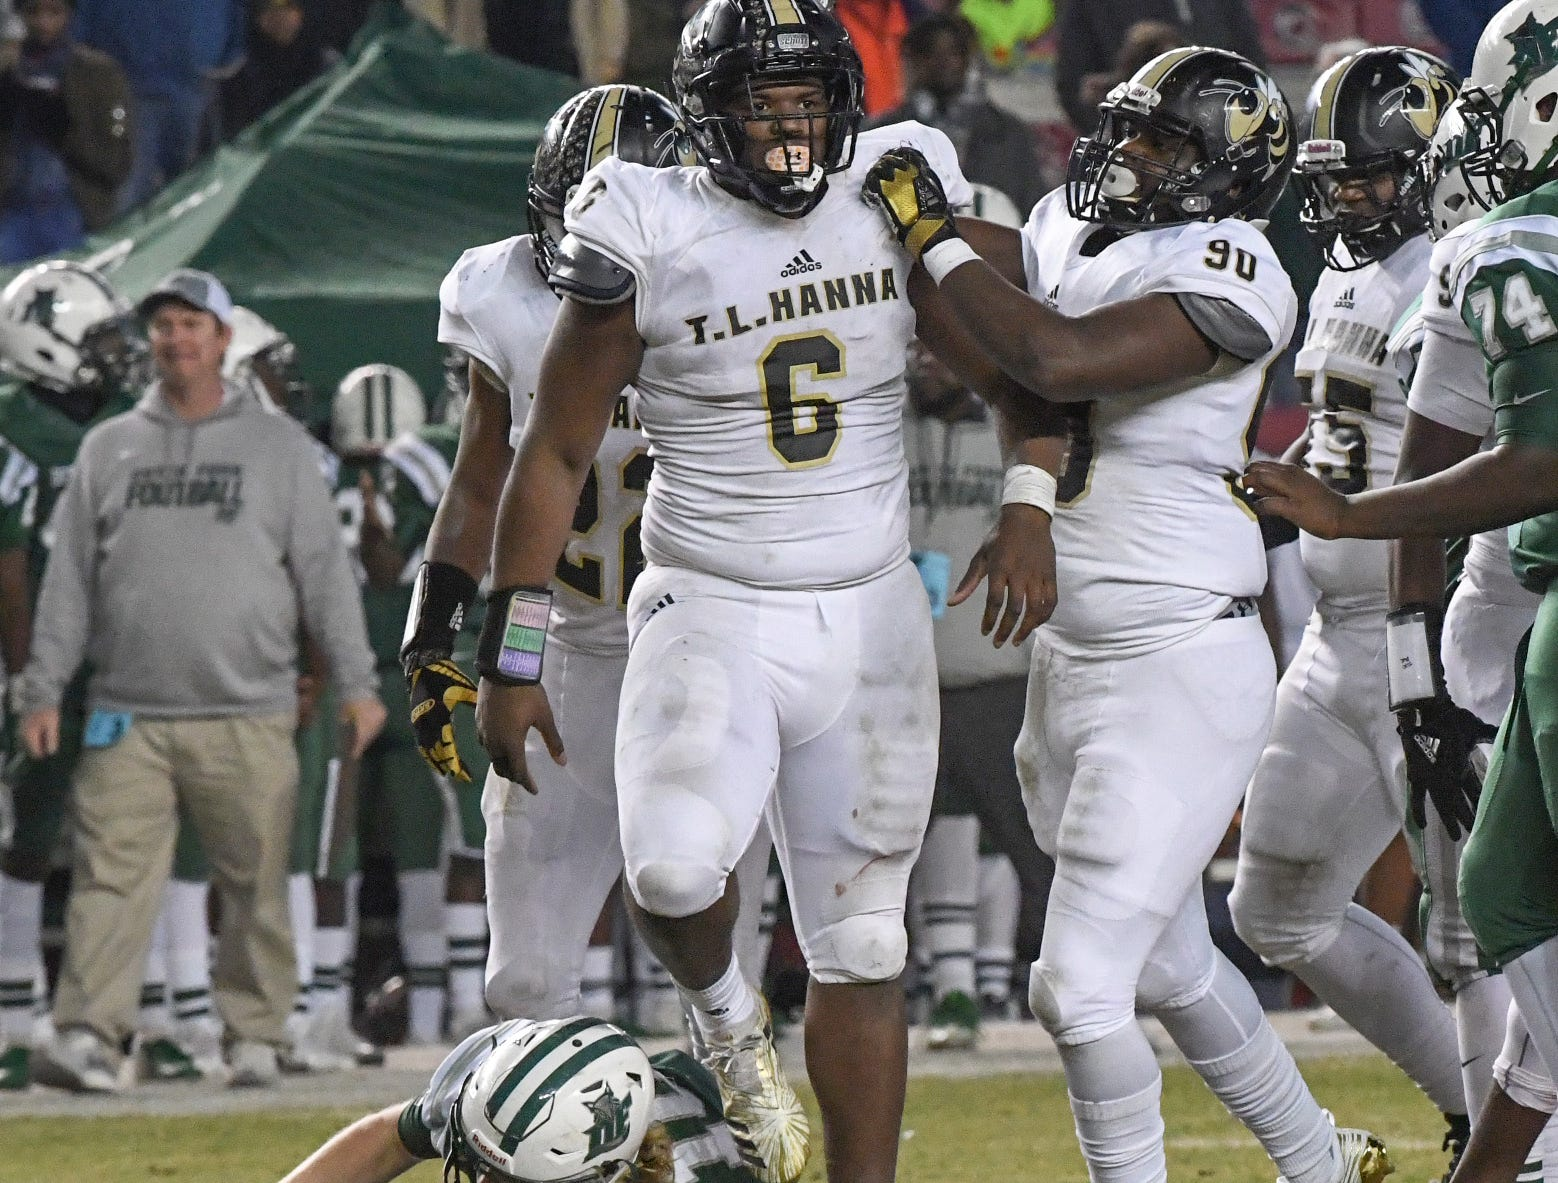 TL Hanna sophomore Ryan Wynn (90) congratulates TL Hanna senior Zacch Pickens (6) for sacking Dutch Fork junior Tyler Olenchuk(10) during the third quarter of the Class AAAAA state championship game at Williams-Brice Stadium in Columbia Saturday, December 8, 2018.